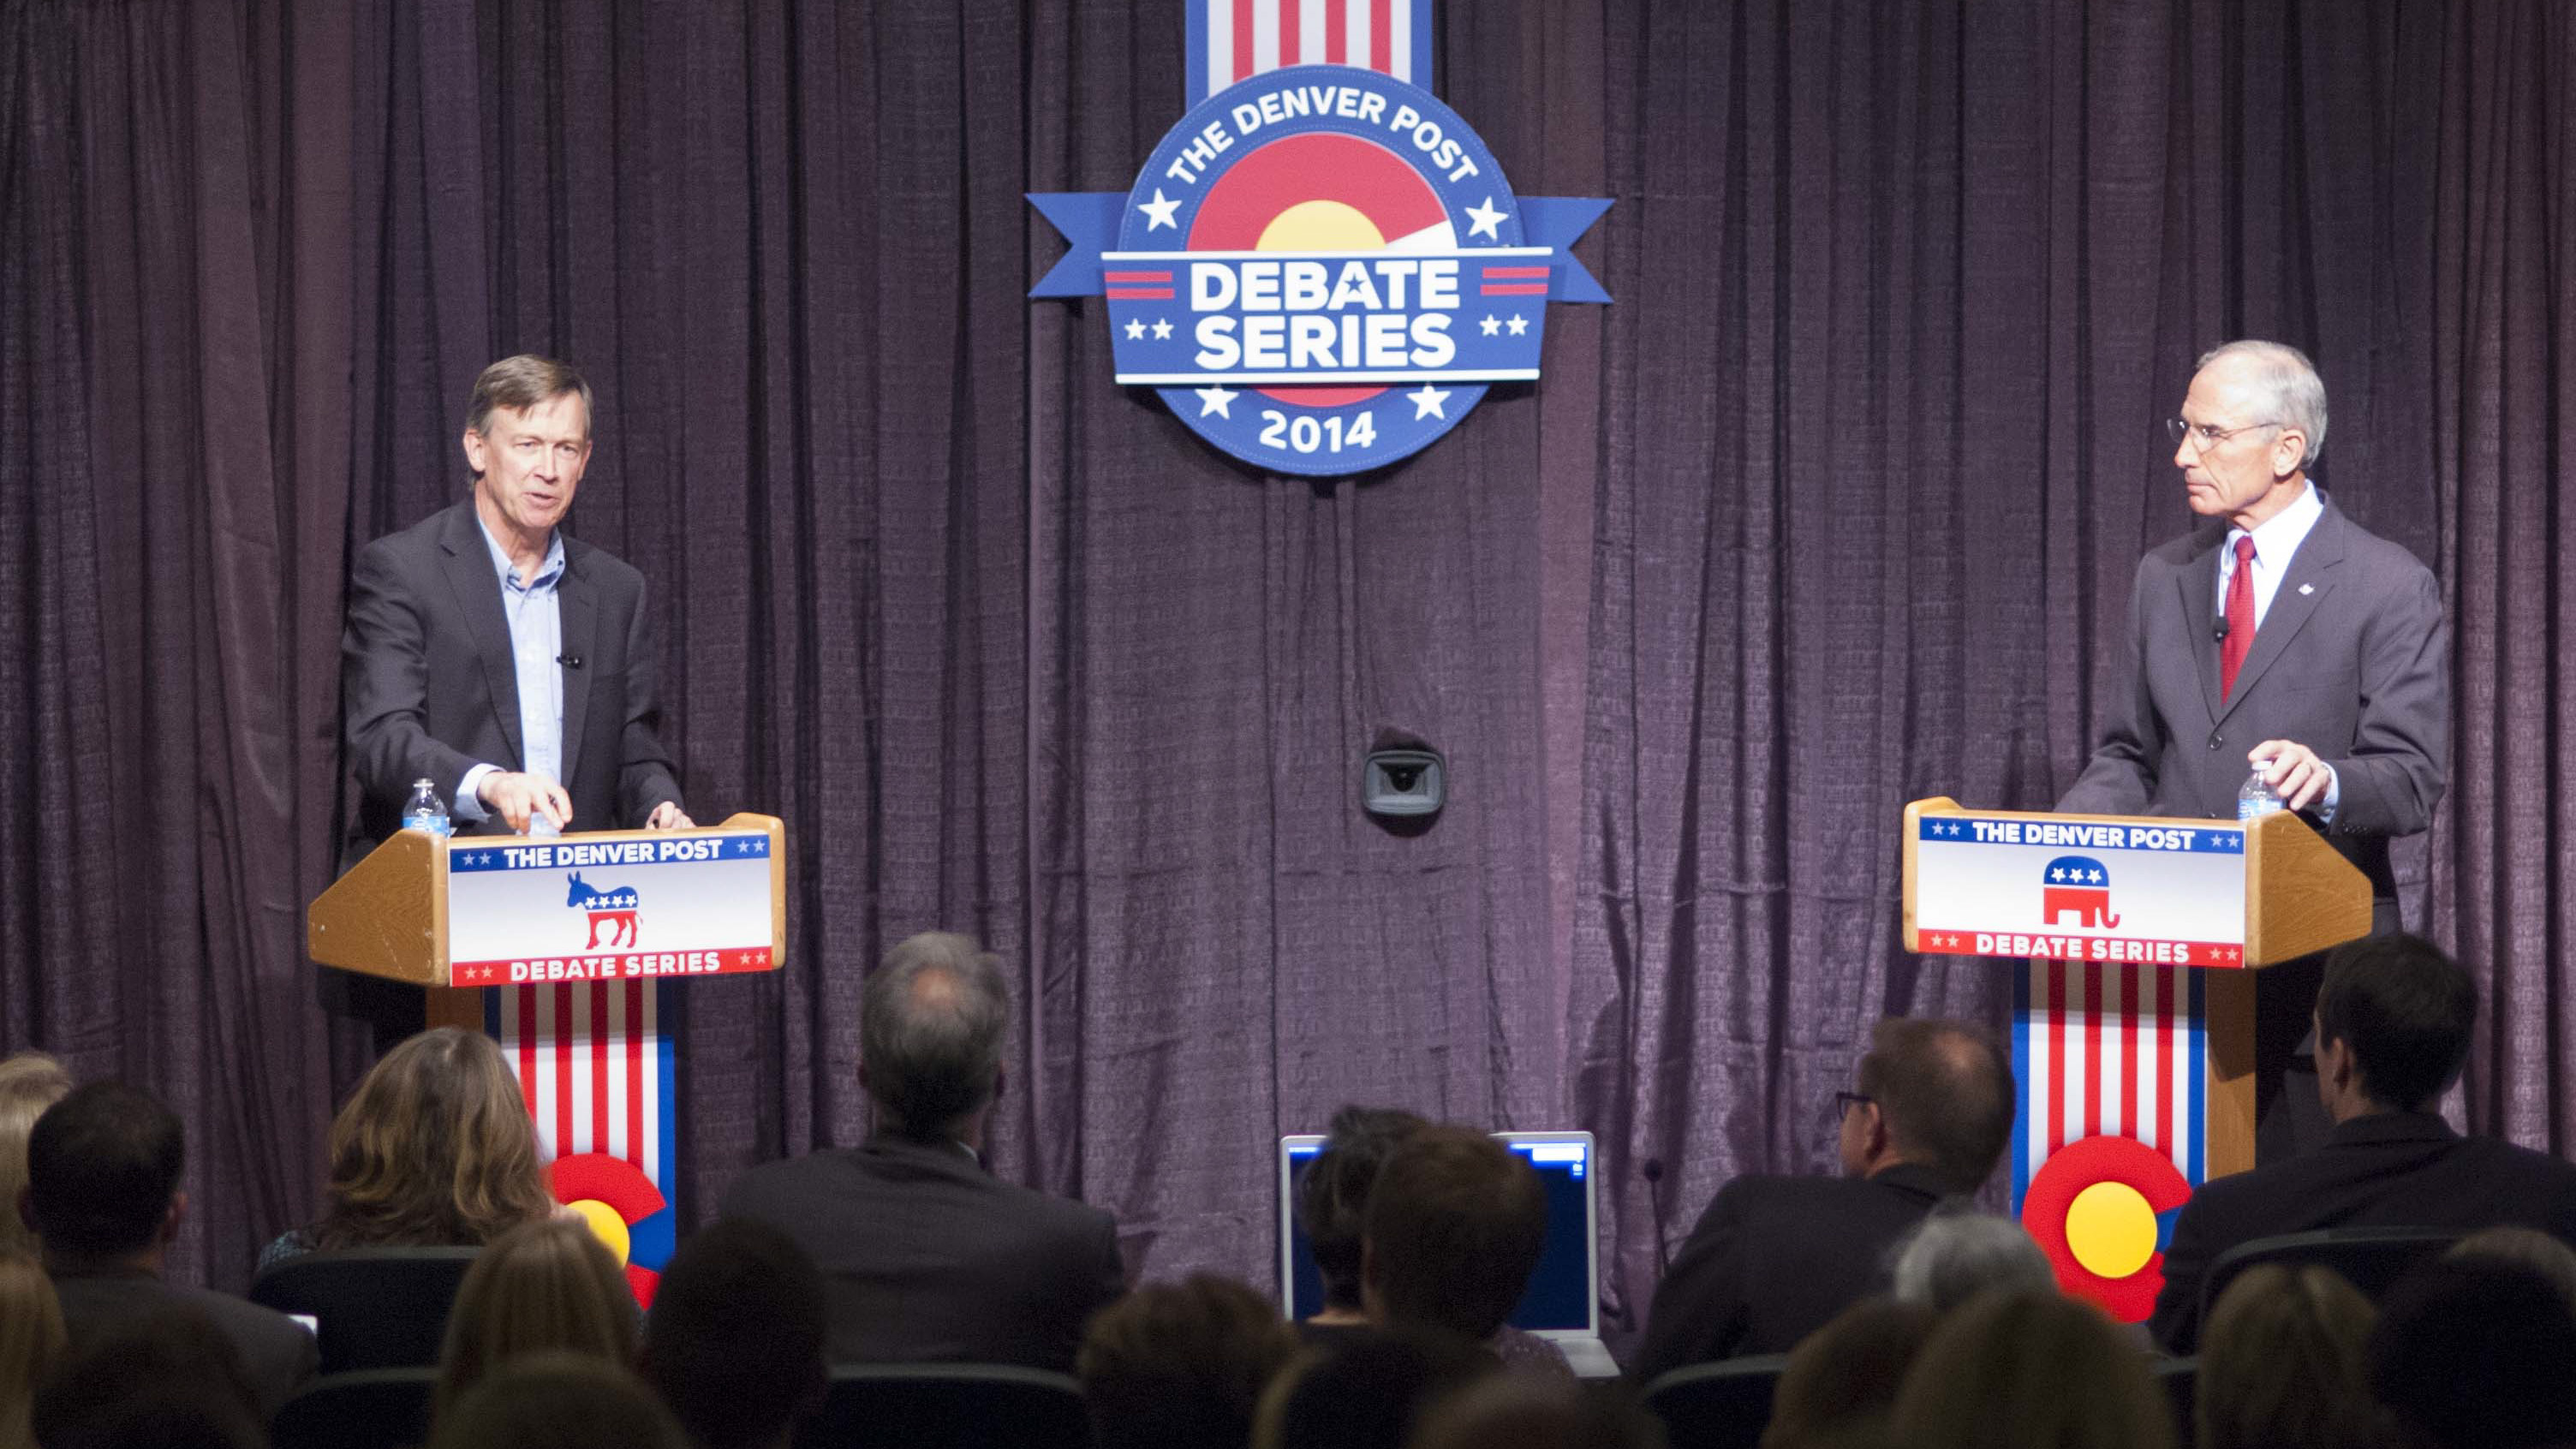 Photo: Hickenlooper, Beauprez debate